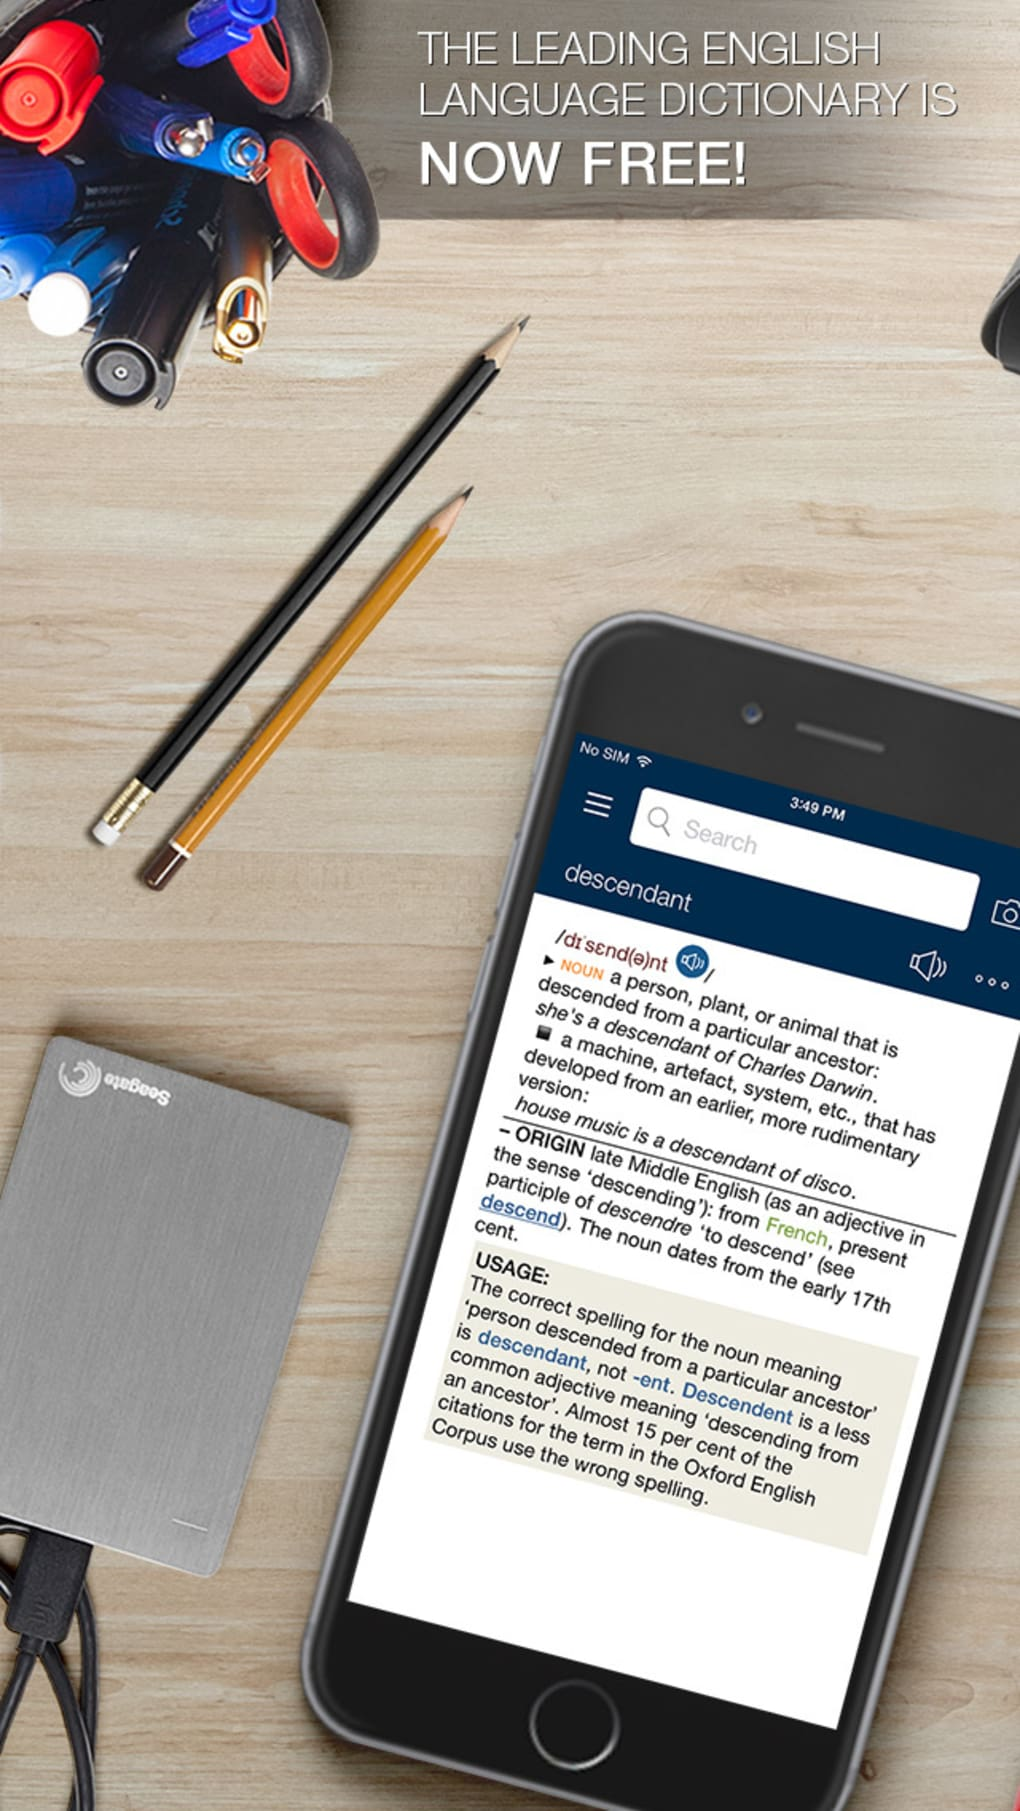 Oxford Dictionary of English FREE for iPhone - Download